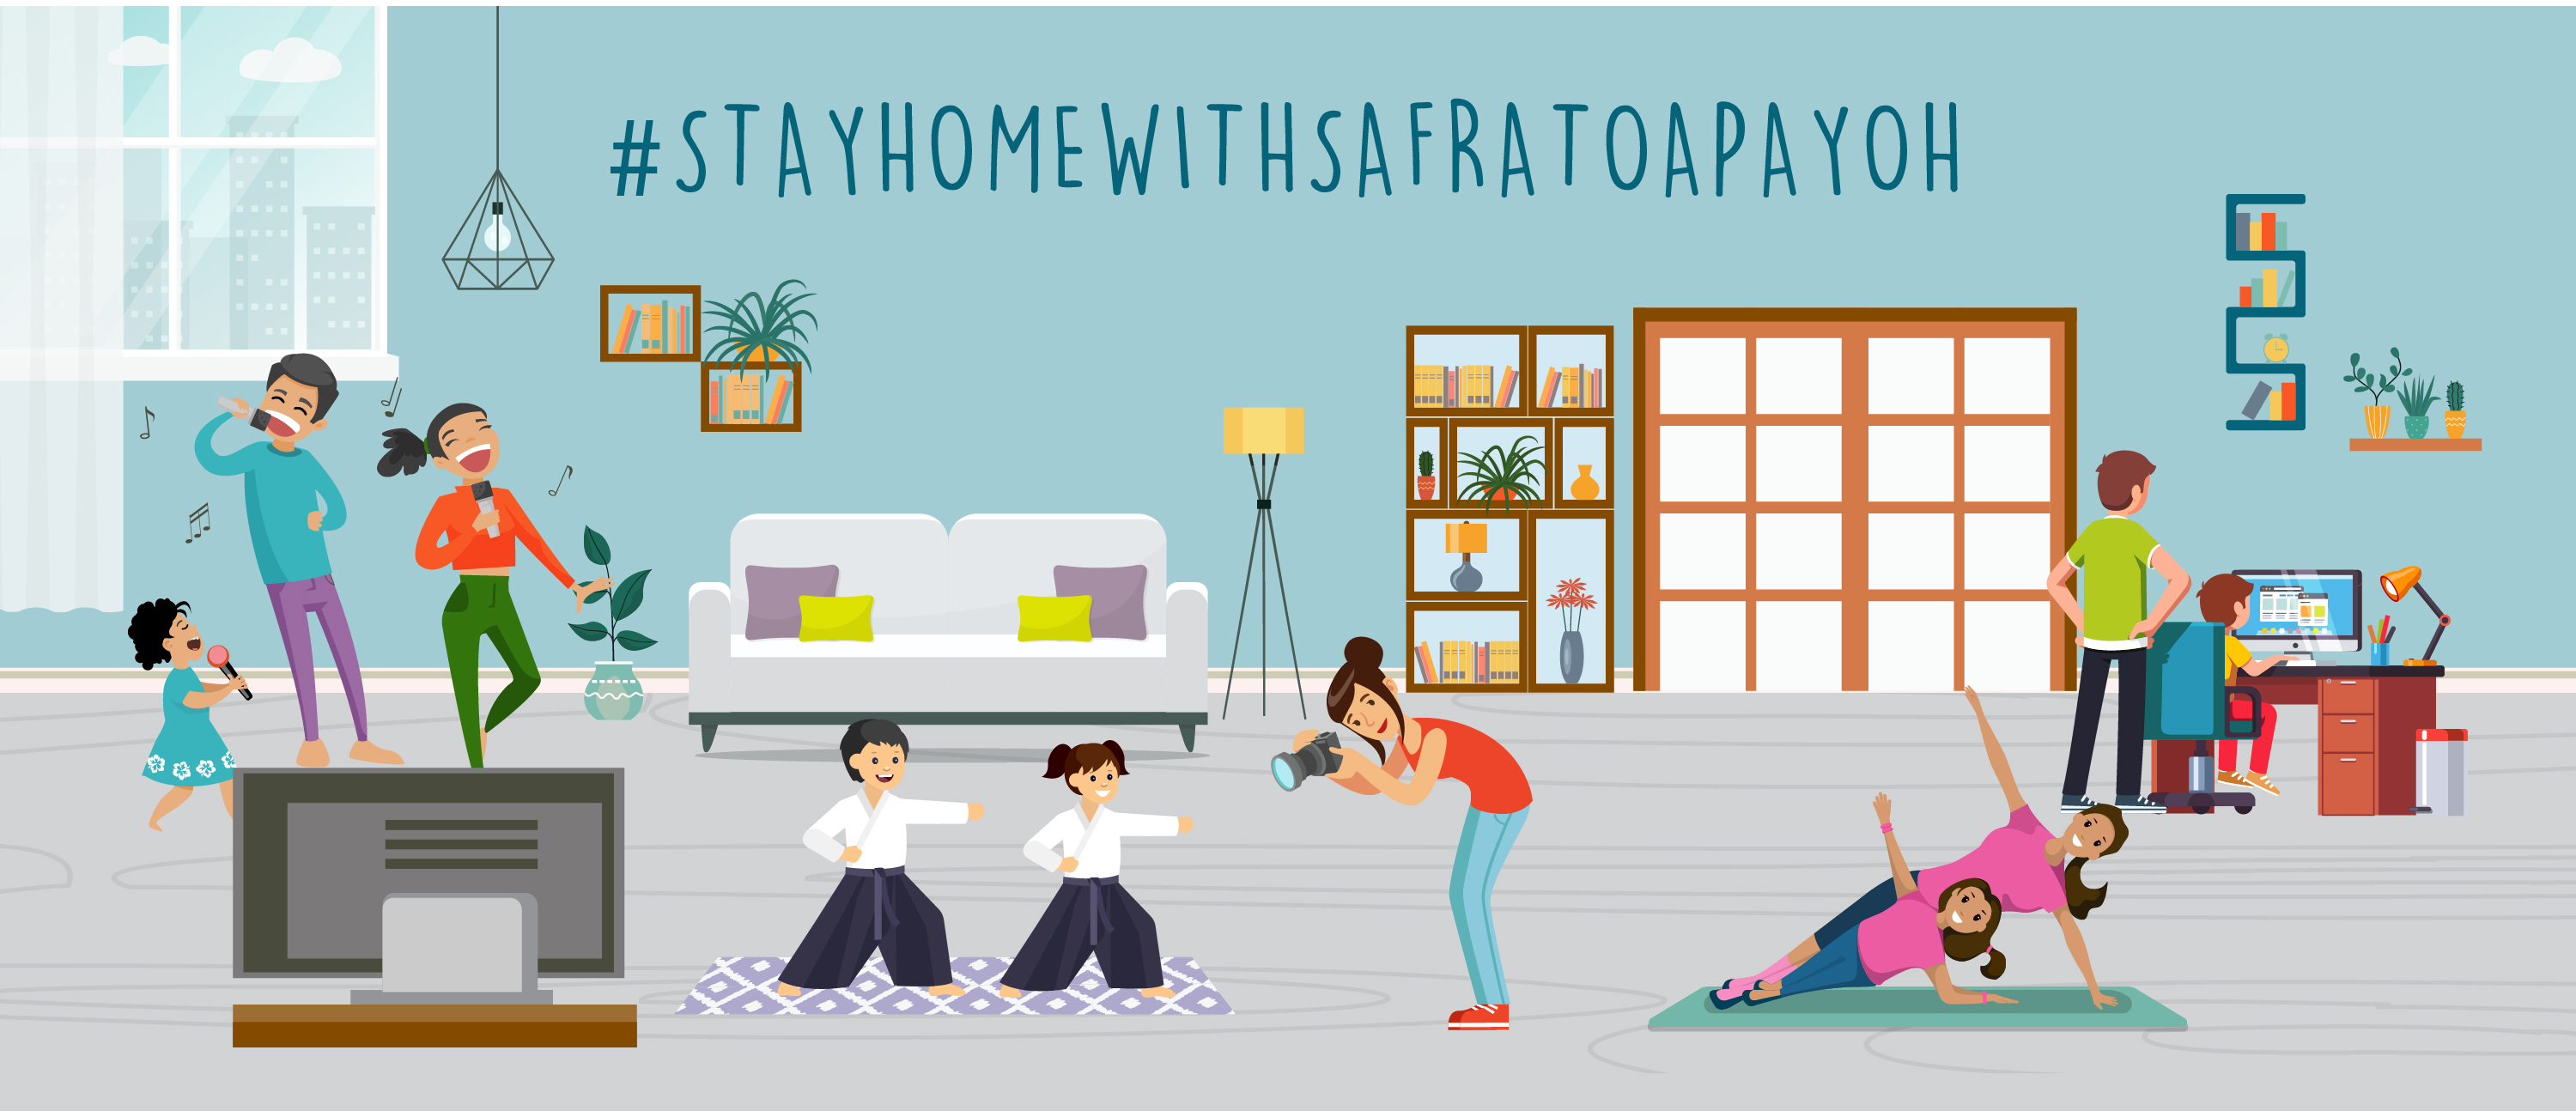 Stay Connected w SAFRA Toa Payoh V3_3000x1300